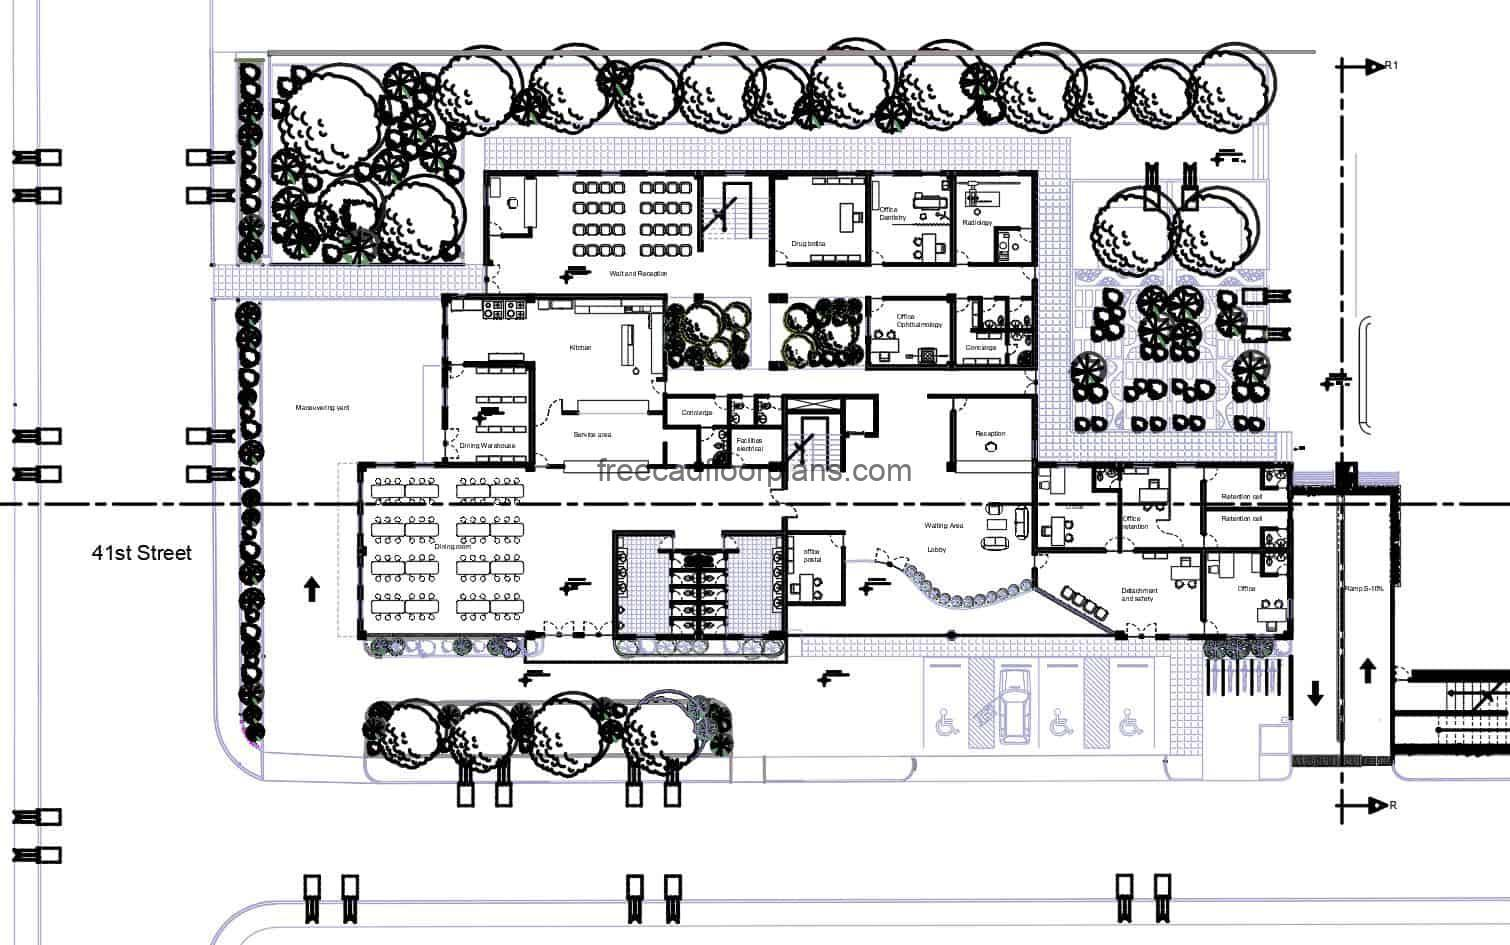 Complete Architectural Project of Community Center of several levels, composed of community clinic, security center, post office and public dining room, defined spaces and blocks in autocad DWG.